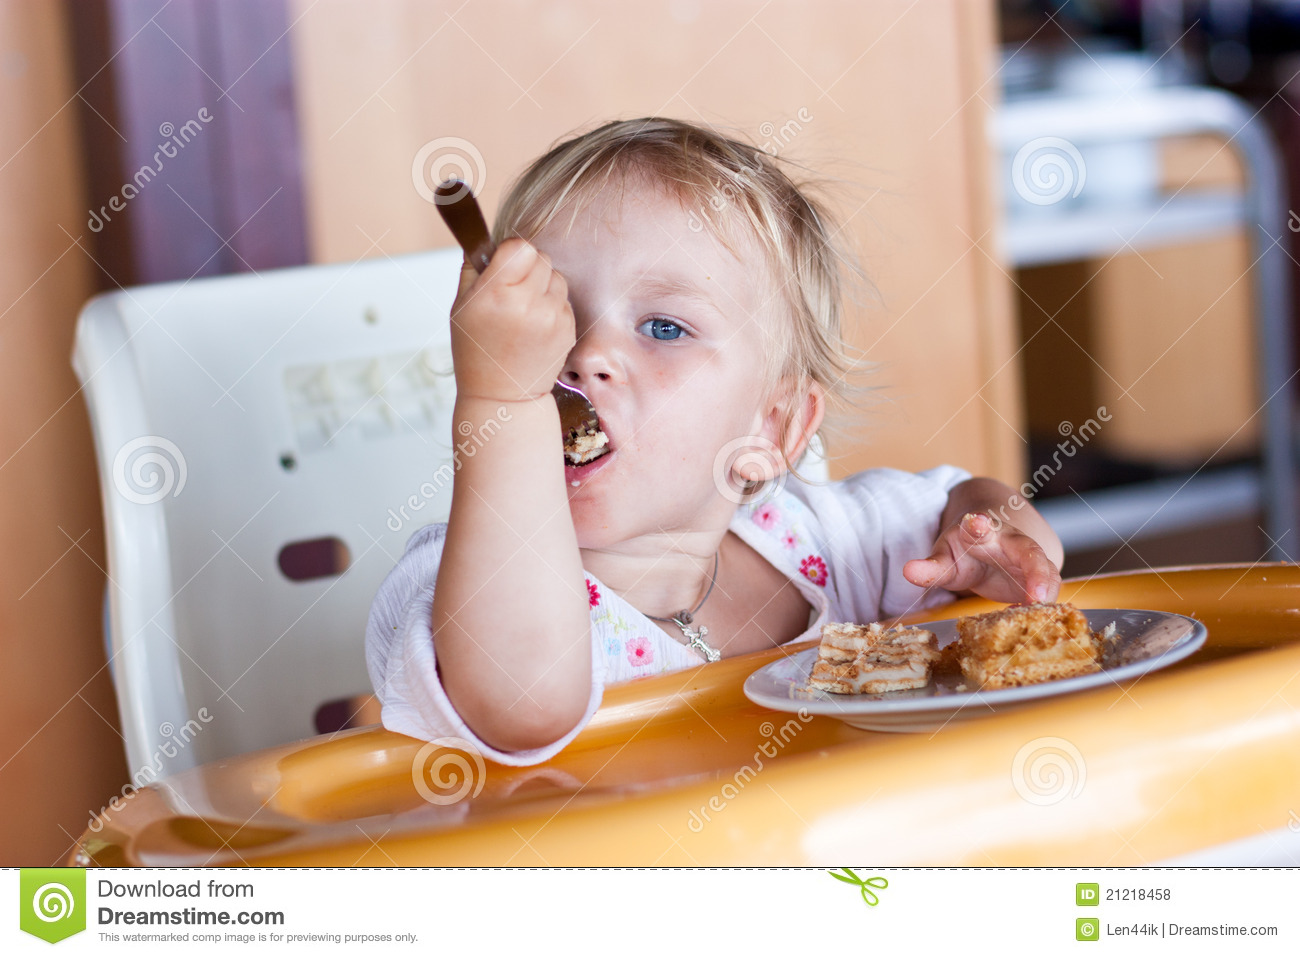 Baby Eating Cake Clipart : Adorable Baby Eating Cake In A Chair Royalty Free Stock ...